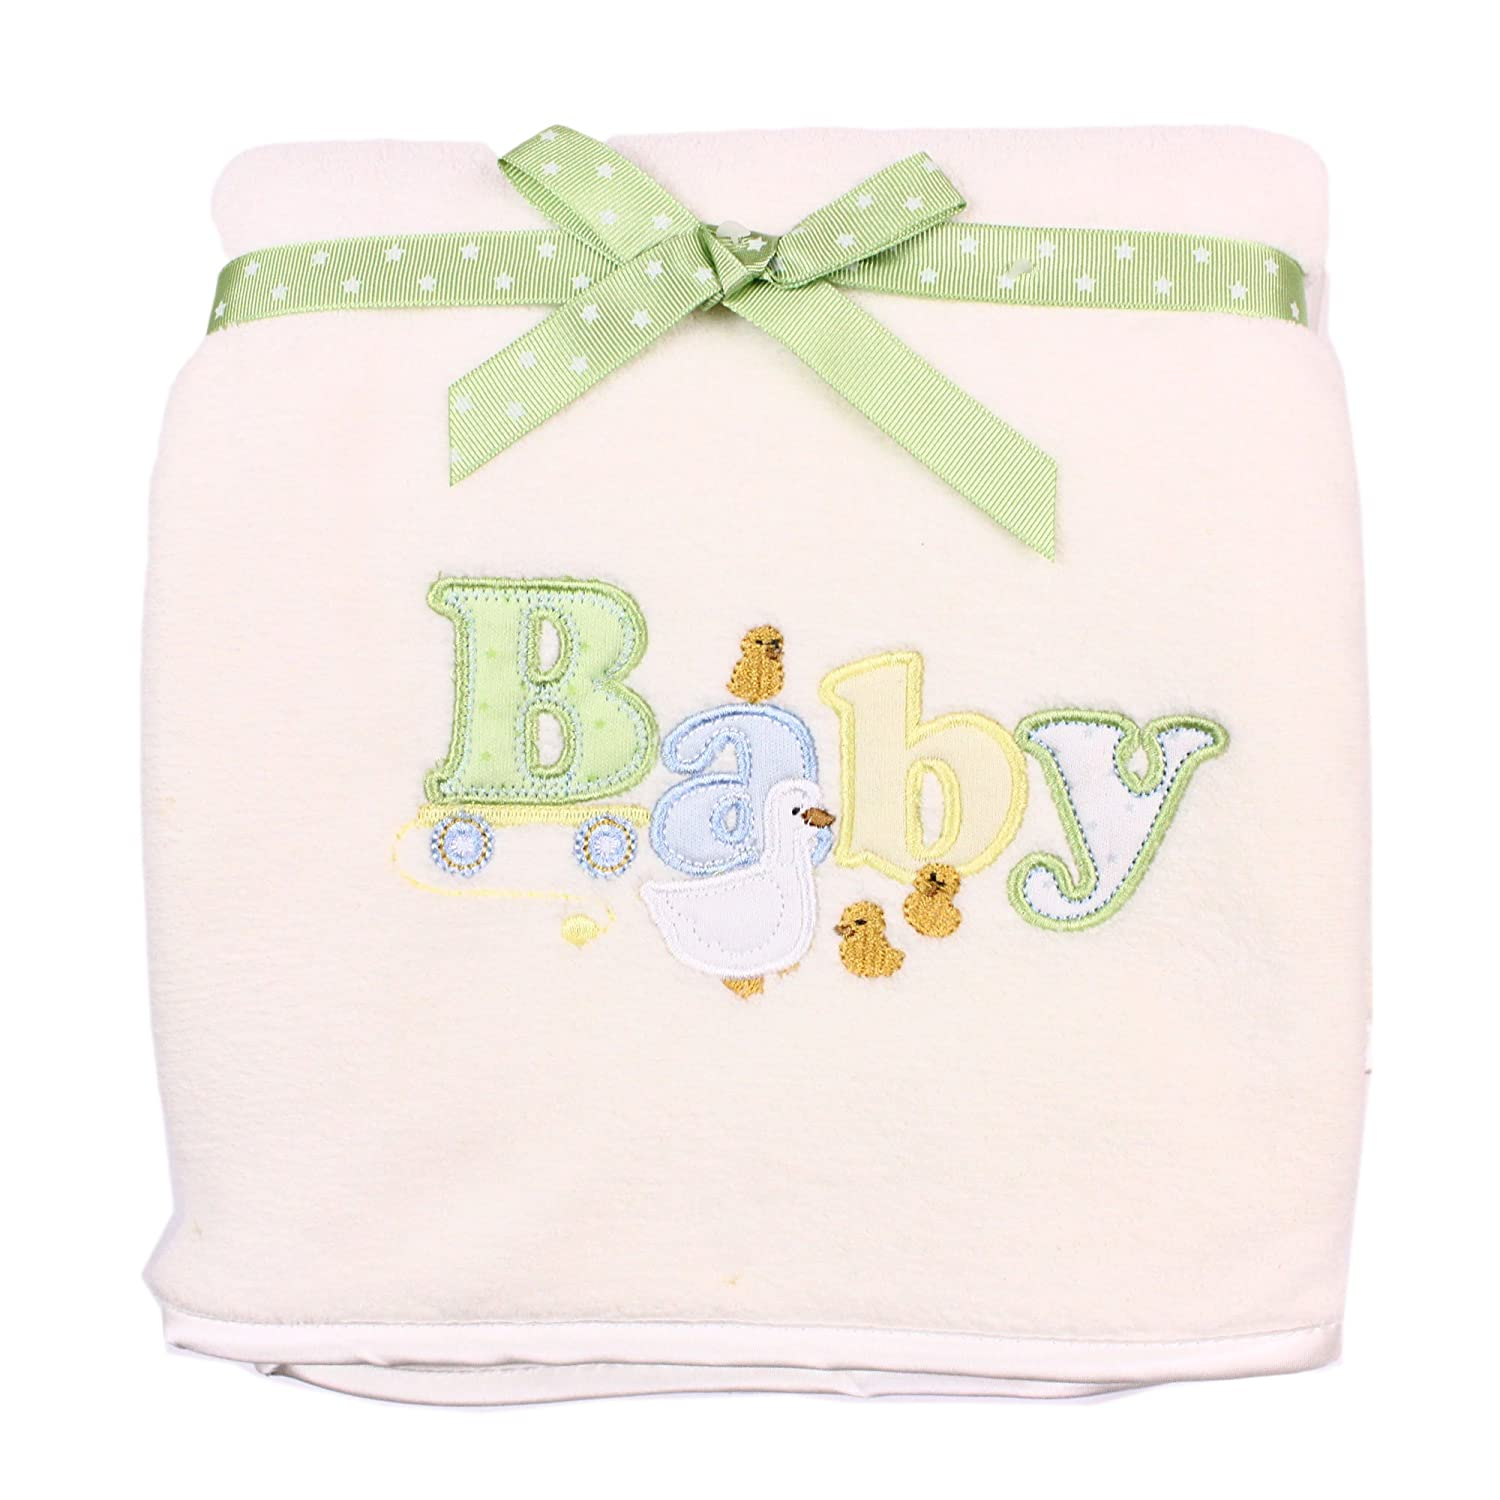 Spasilk Baby Thick Double Layer Plush Blanket with Satin Trim BlueBaby One Size SpaSilk - Clothing RB BABY 02